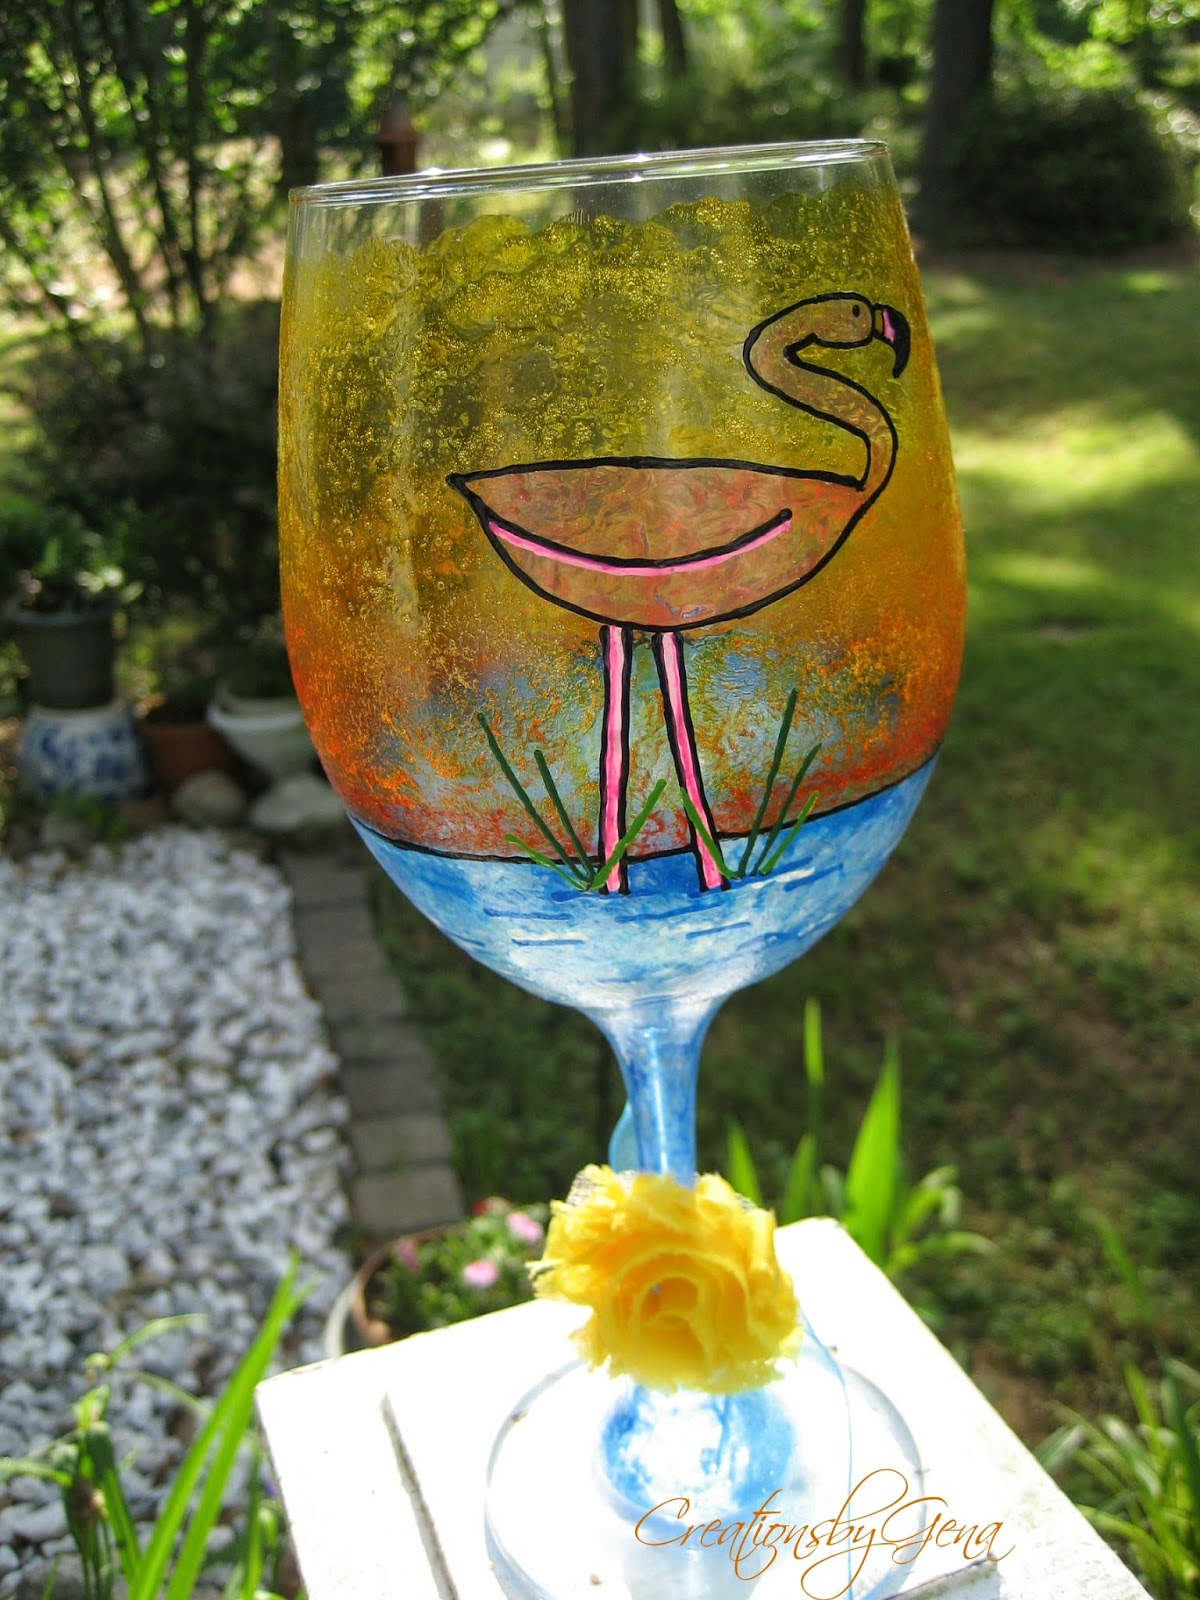 https://www.etsy.com/listing/188931208/hand-painted-wine-glass-tropical-sunset?ref=listing-shop-header-4